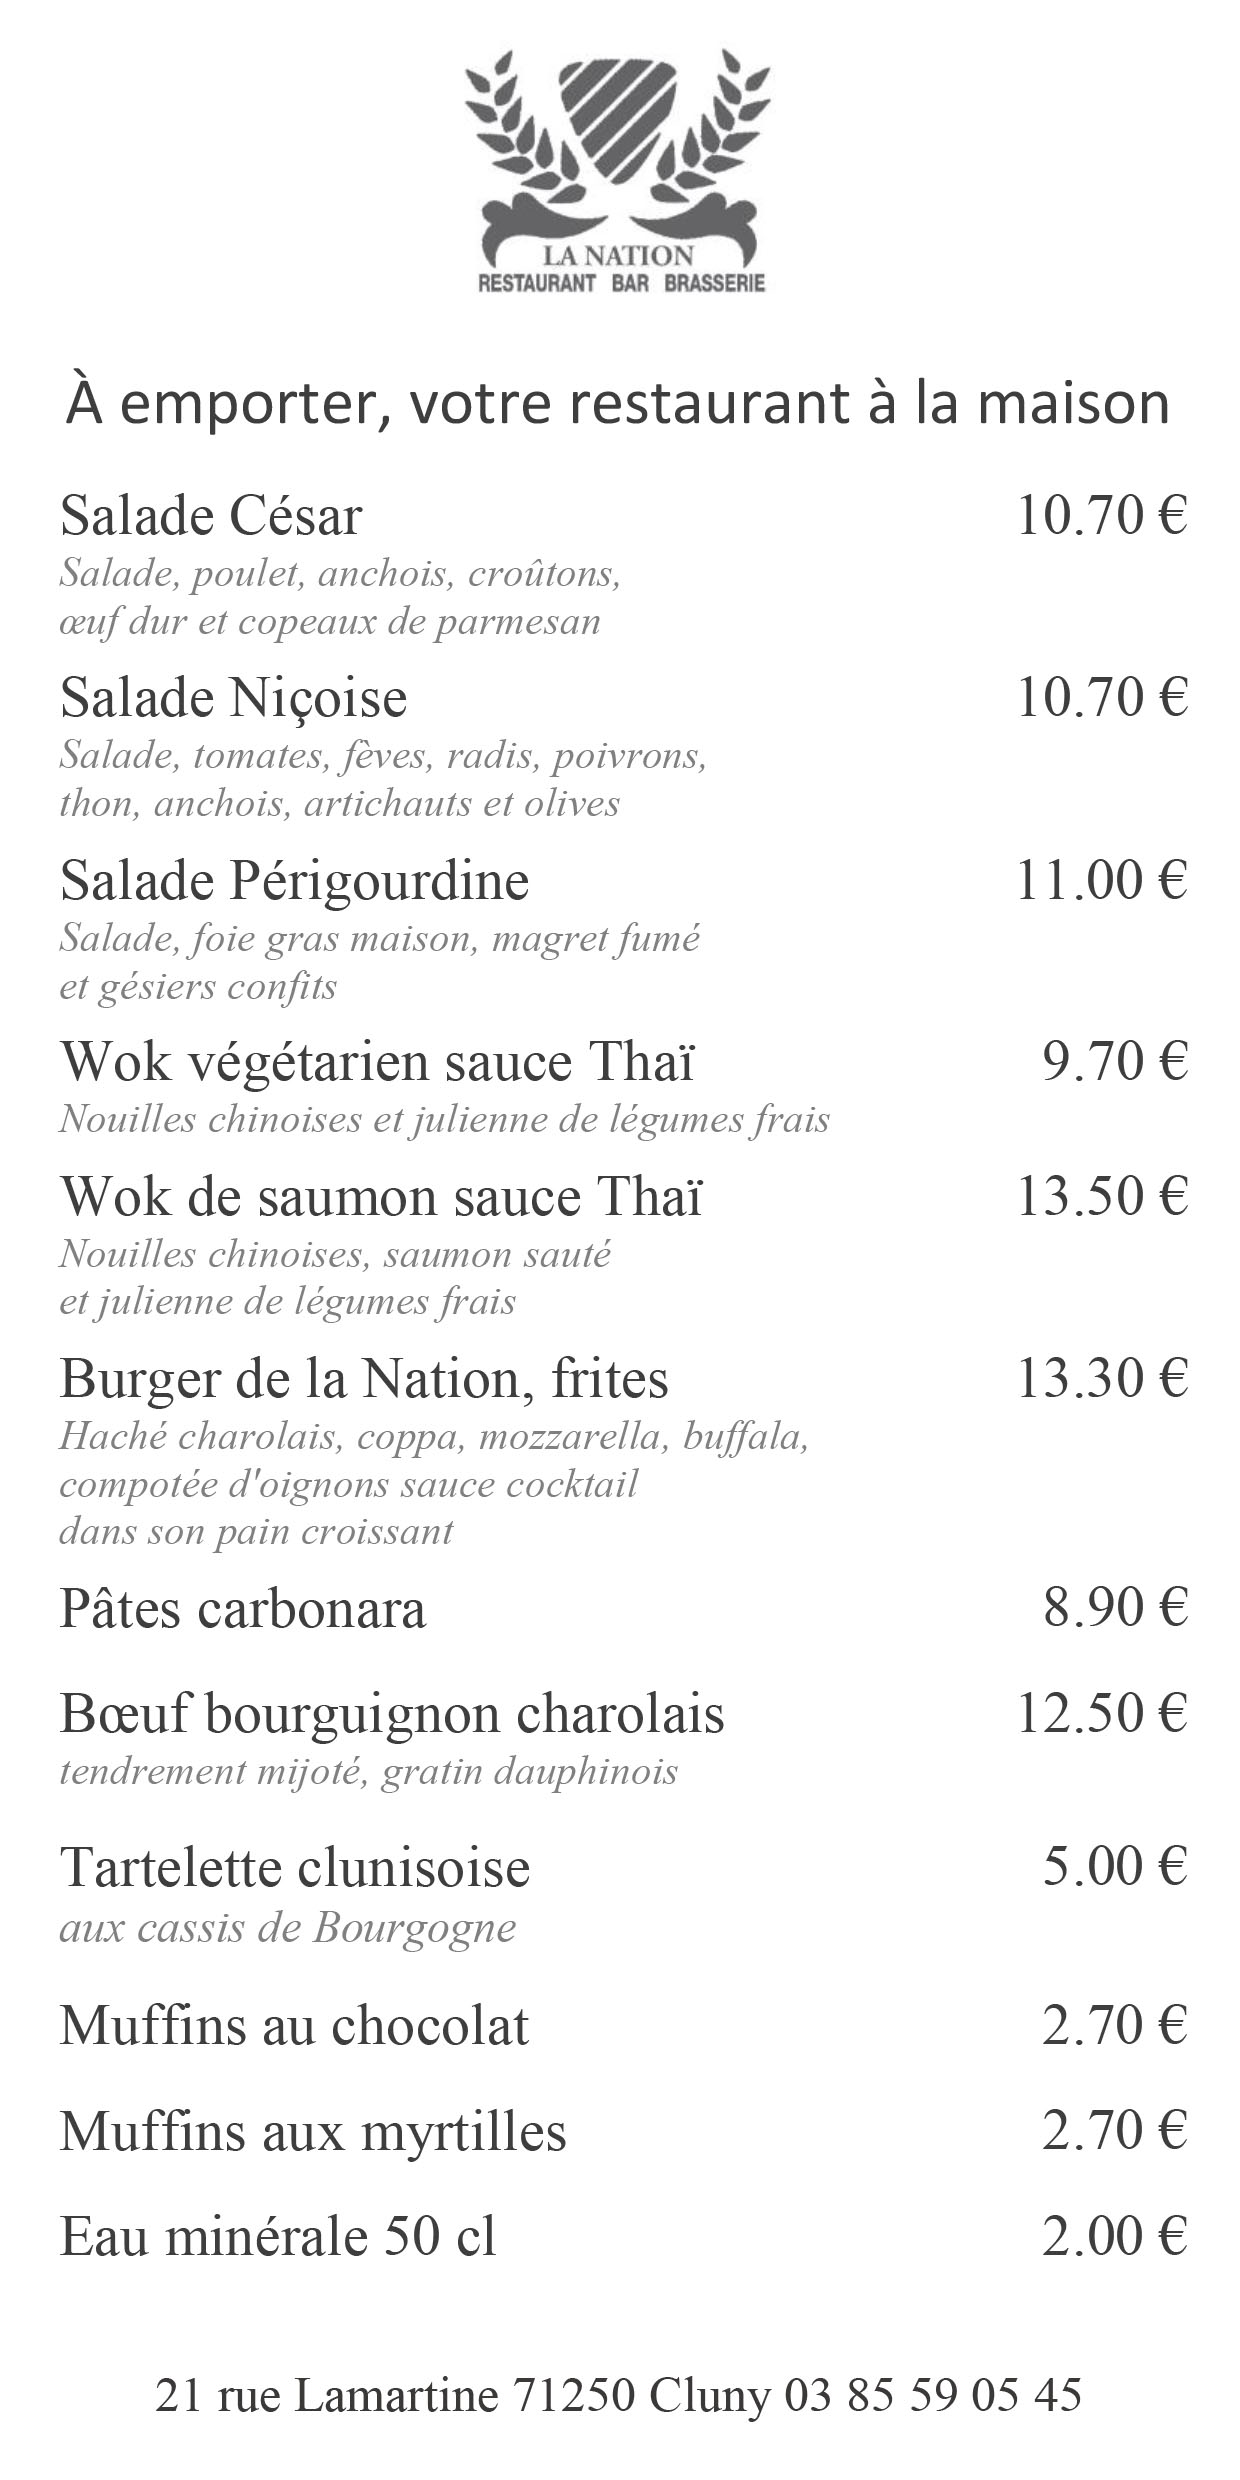 la-nation-arret-sur-image-cluny-menu-0